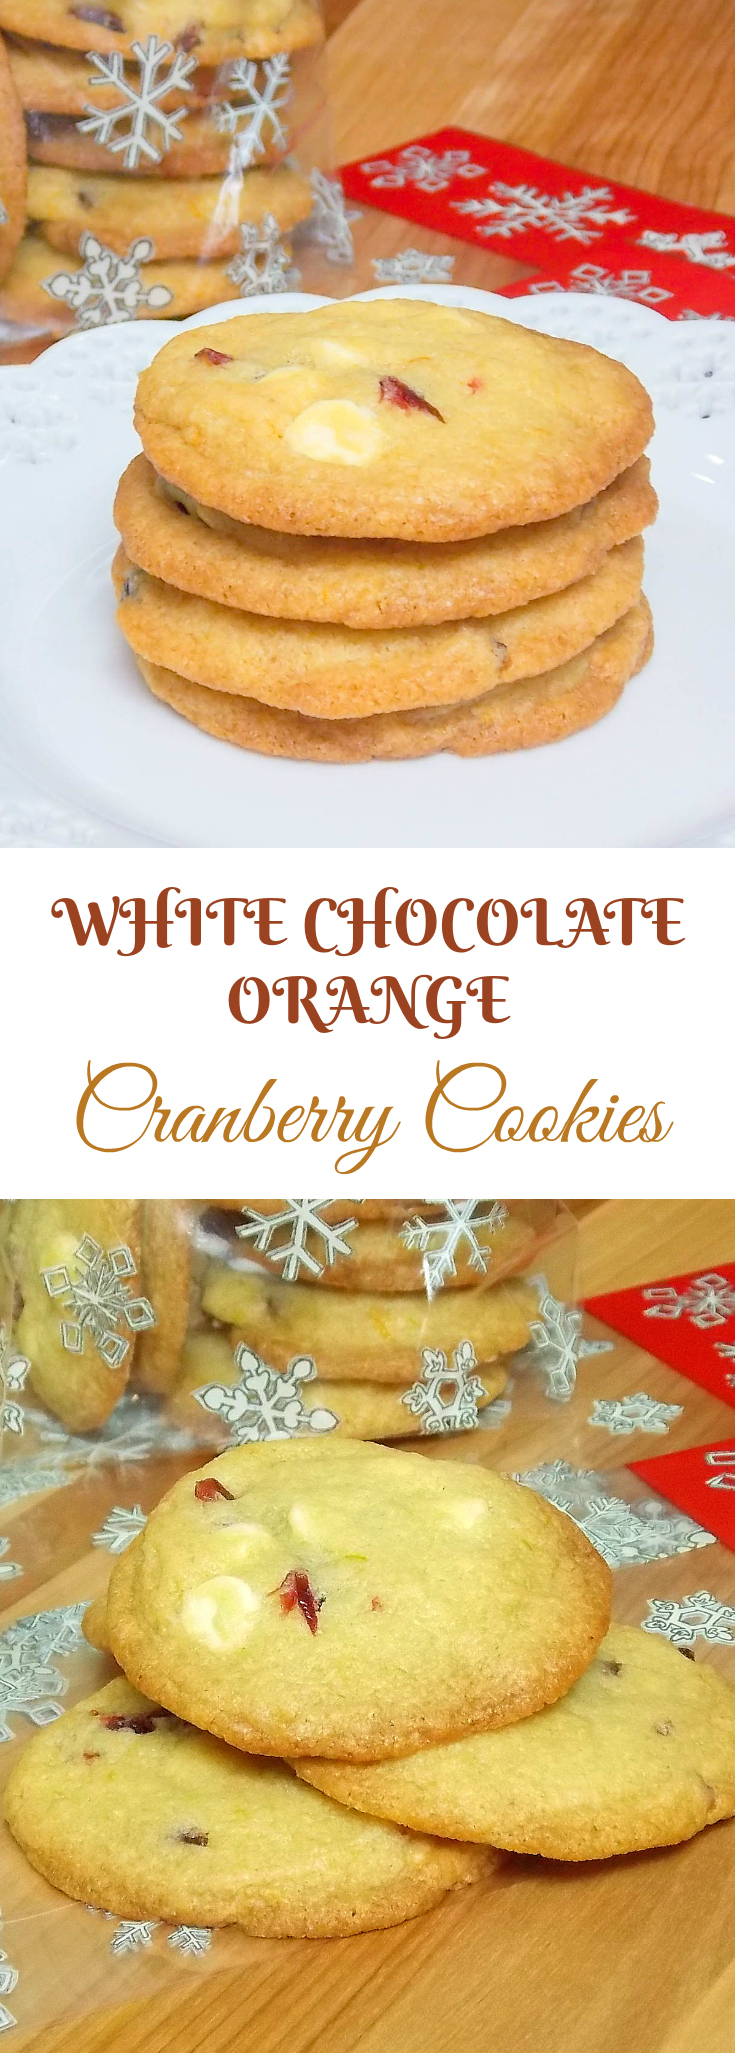 White Chocolate Cranberry Orange Cookies